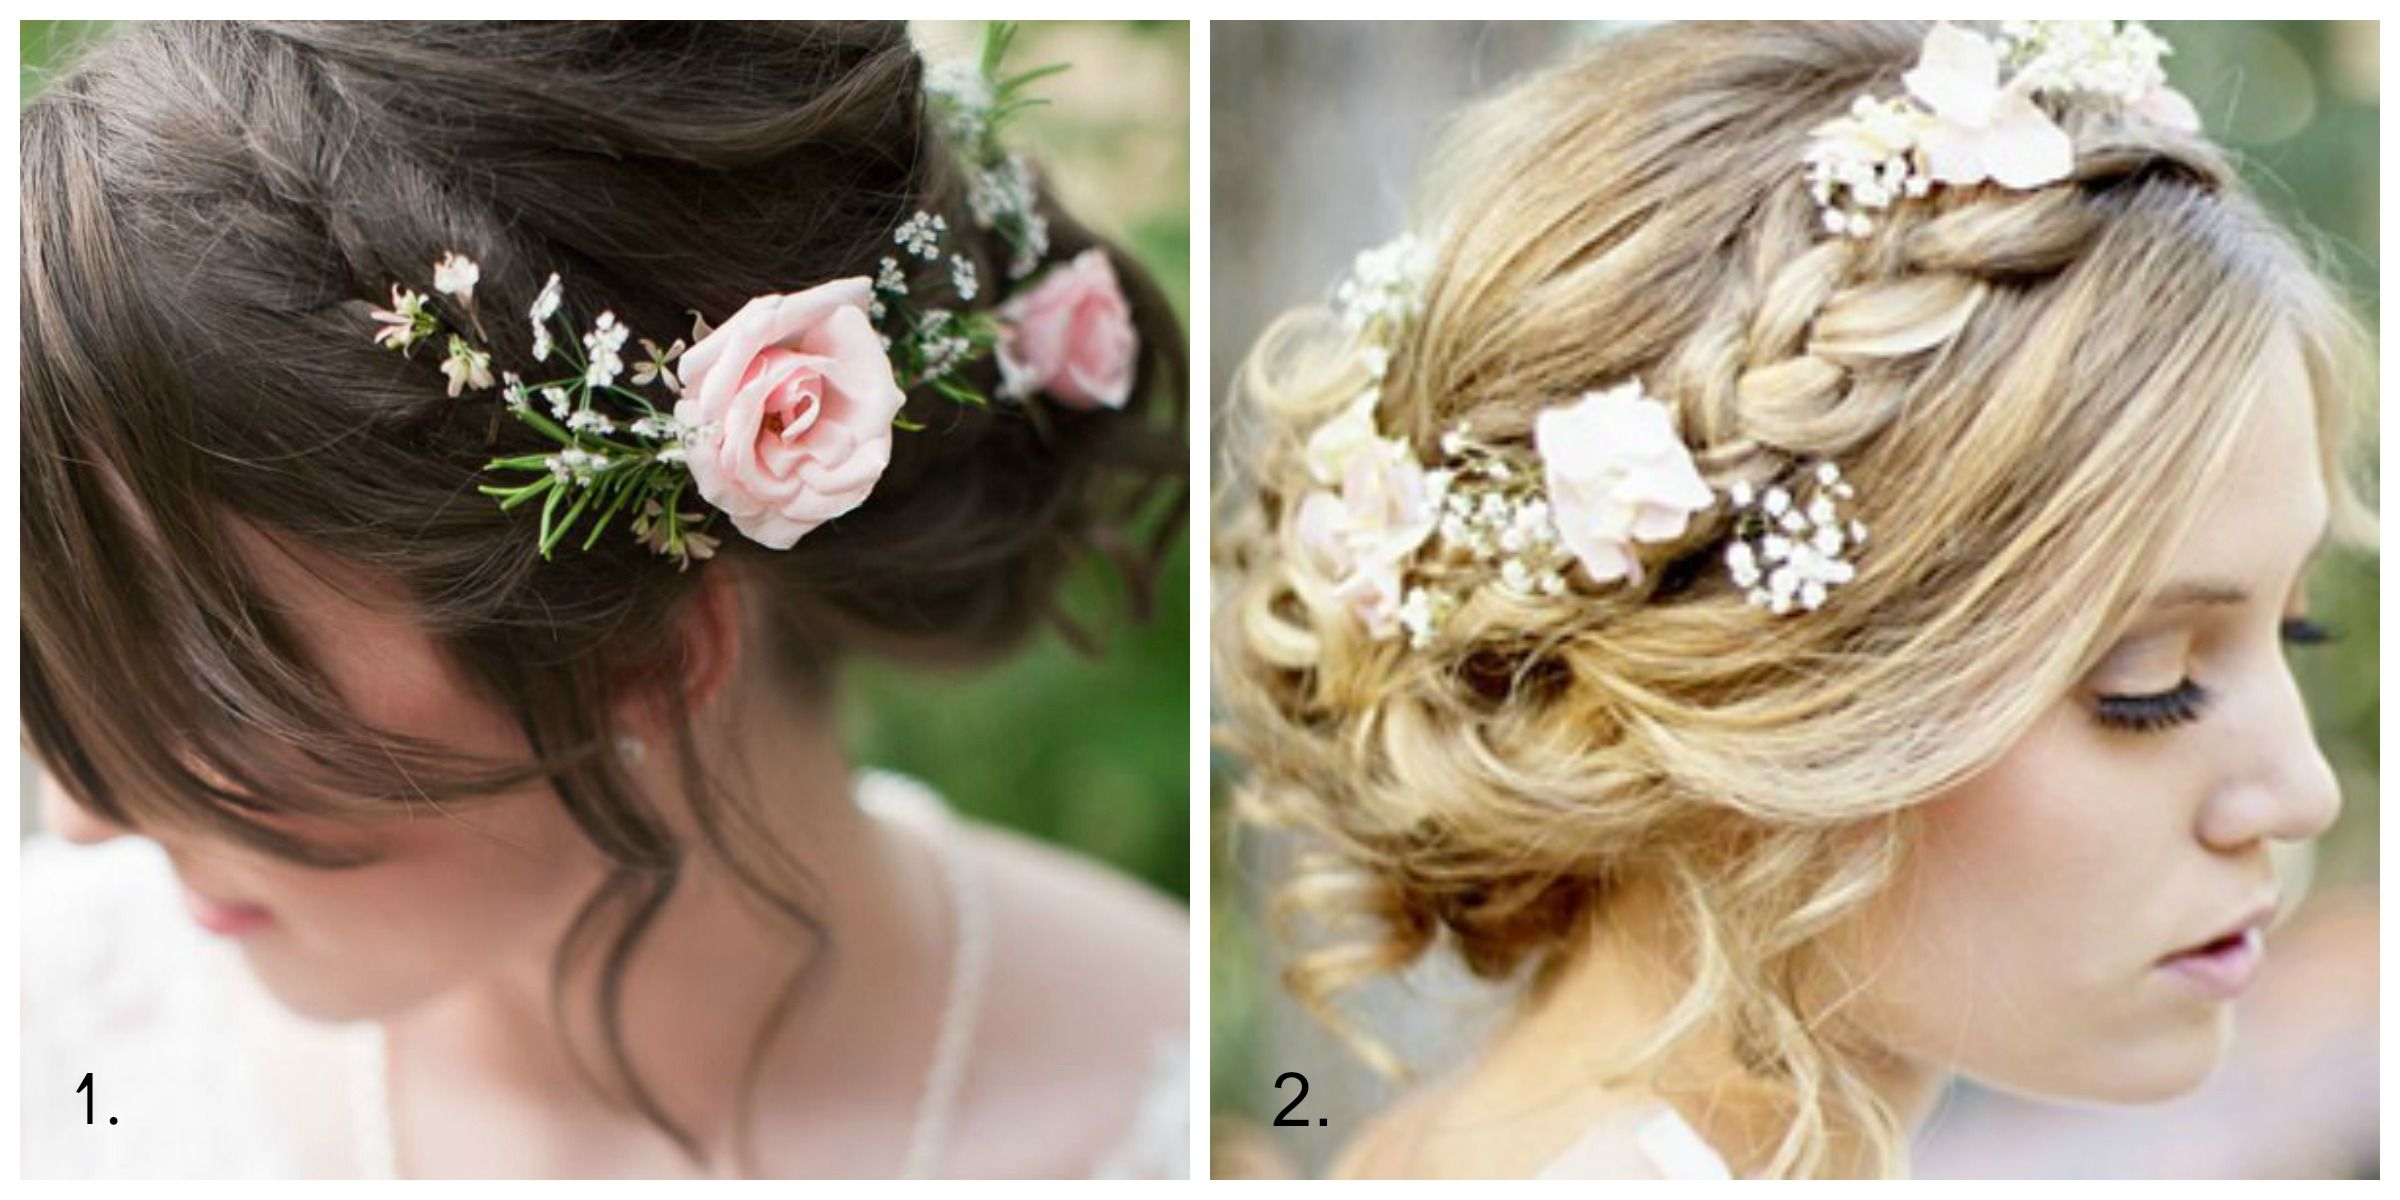 Flower Girl Hairstyles For Wedding: Wedding Hairstyles With Braids And Flowers